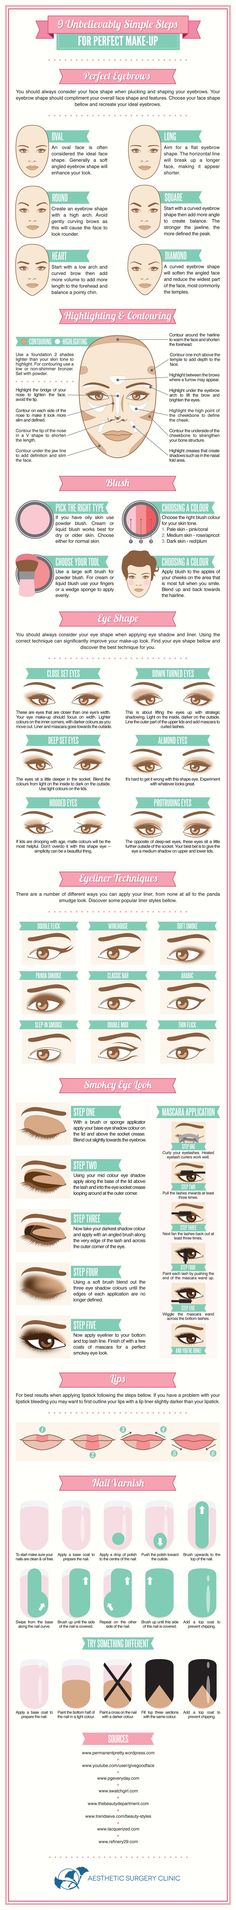 Infographic helps you master the perfect make-up | Stylist Magazine                                                                                                                                                                                 More